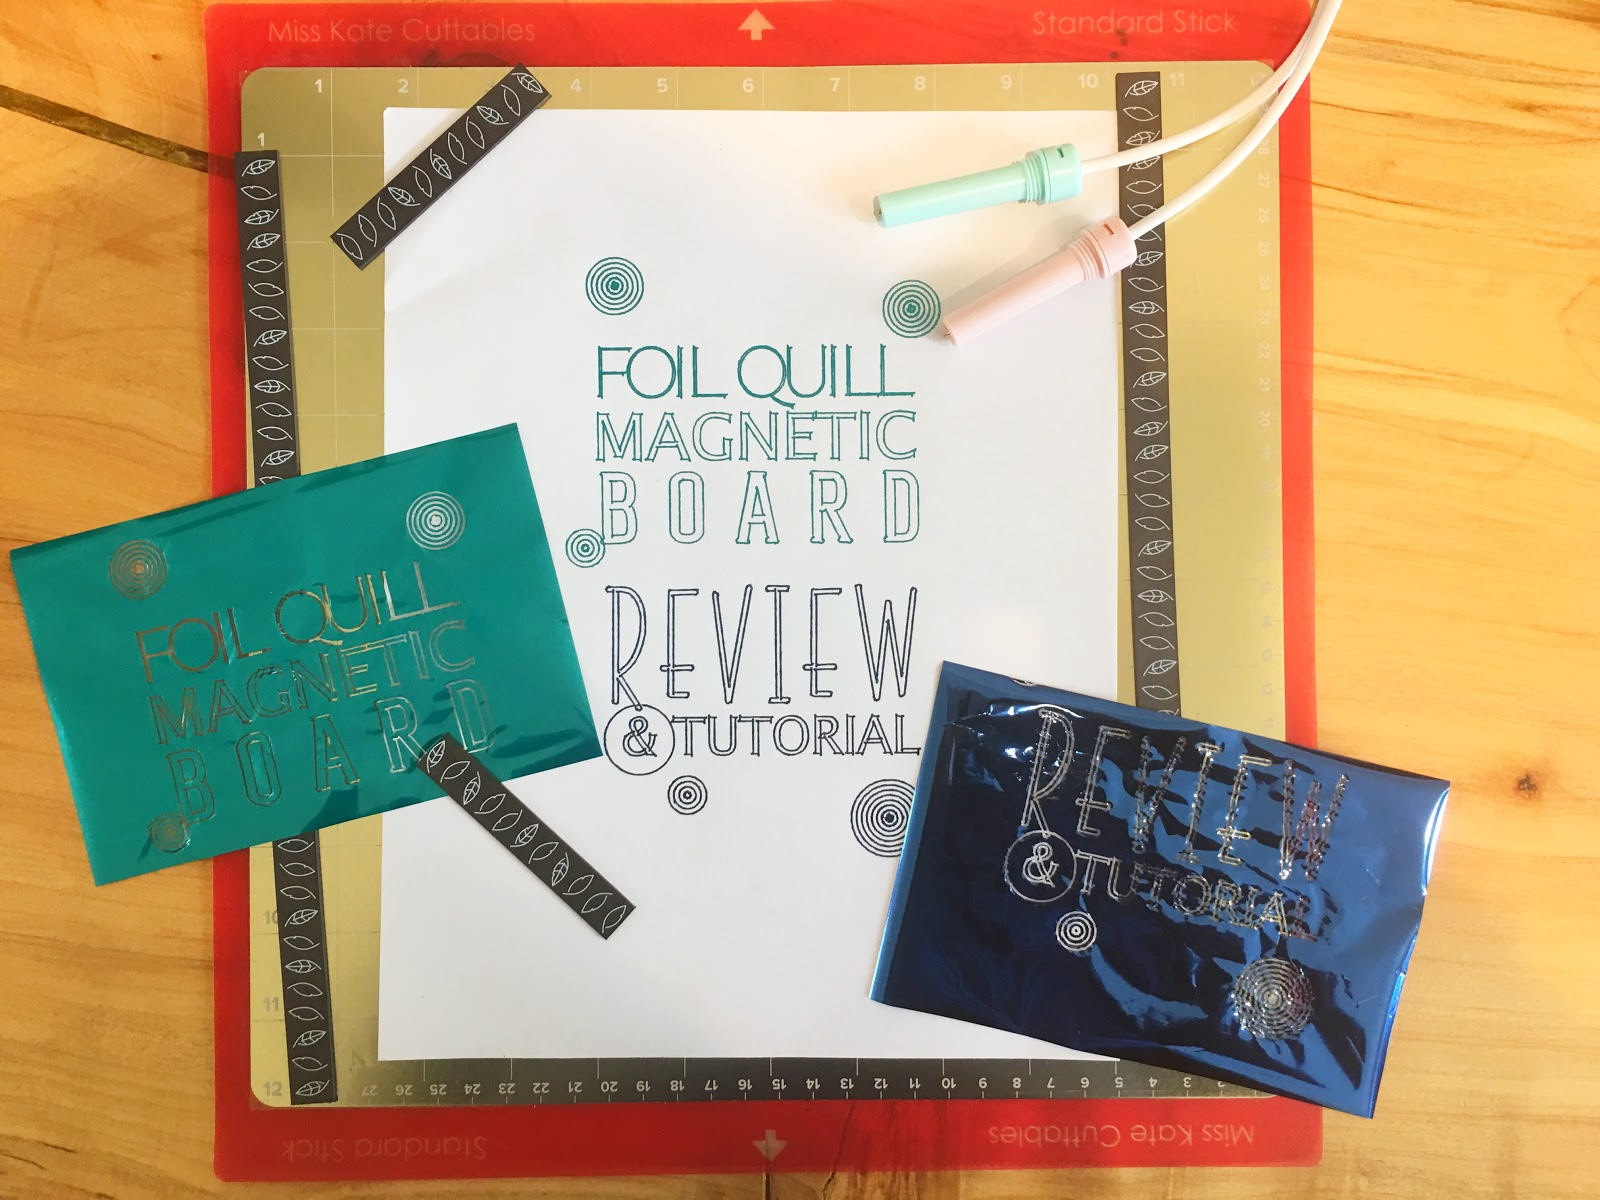 Foil Quill Magnetic Mat Board Review & Tutorial - Silhouette